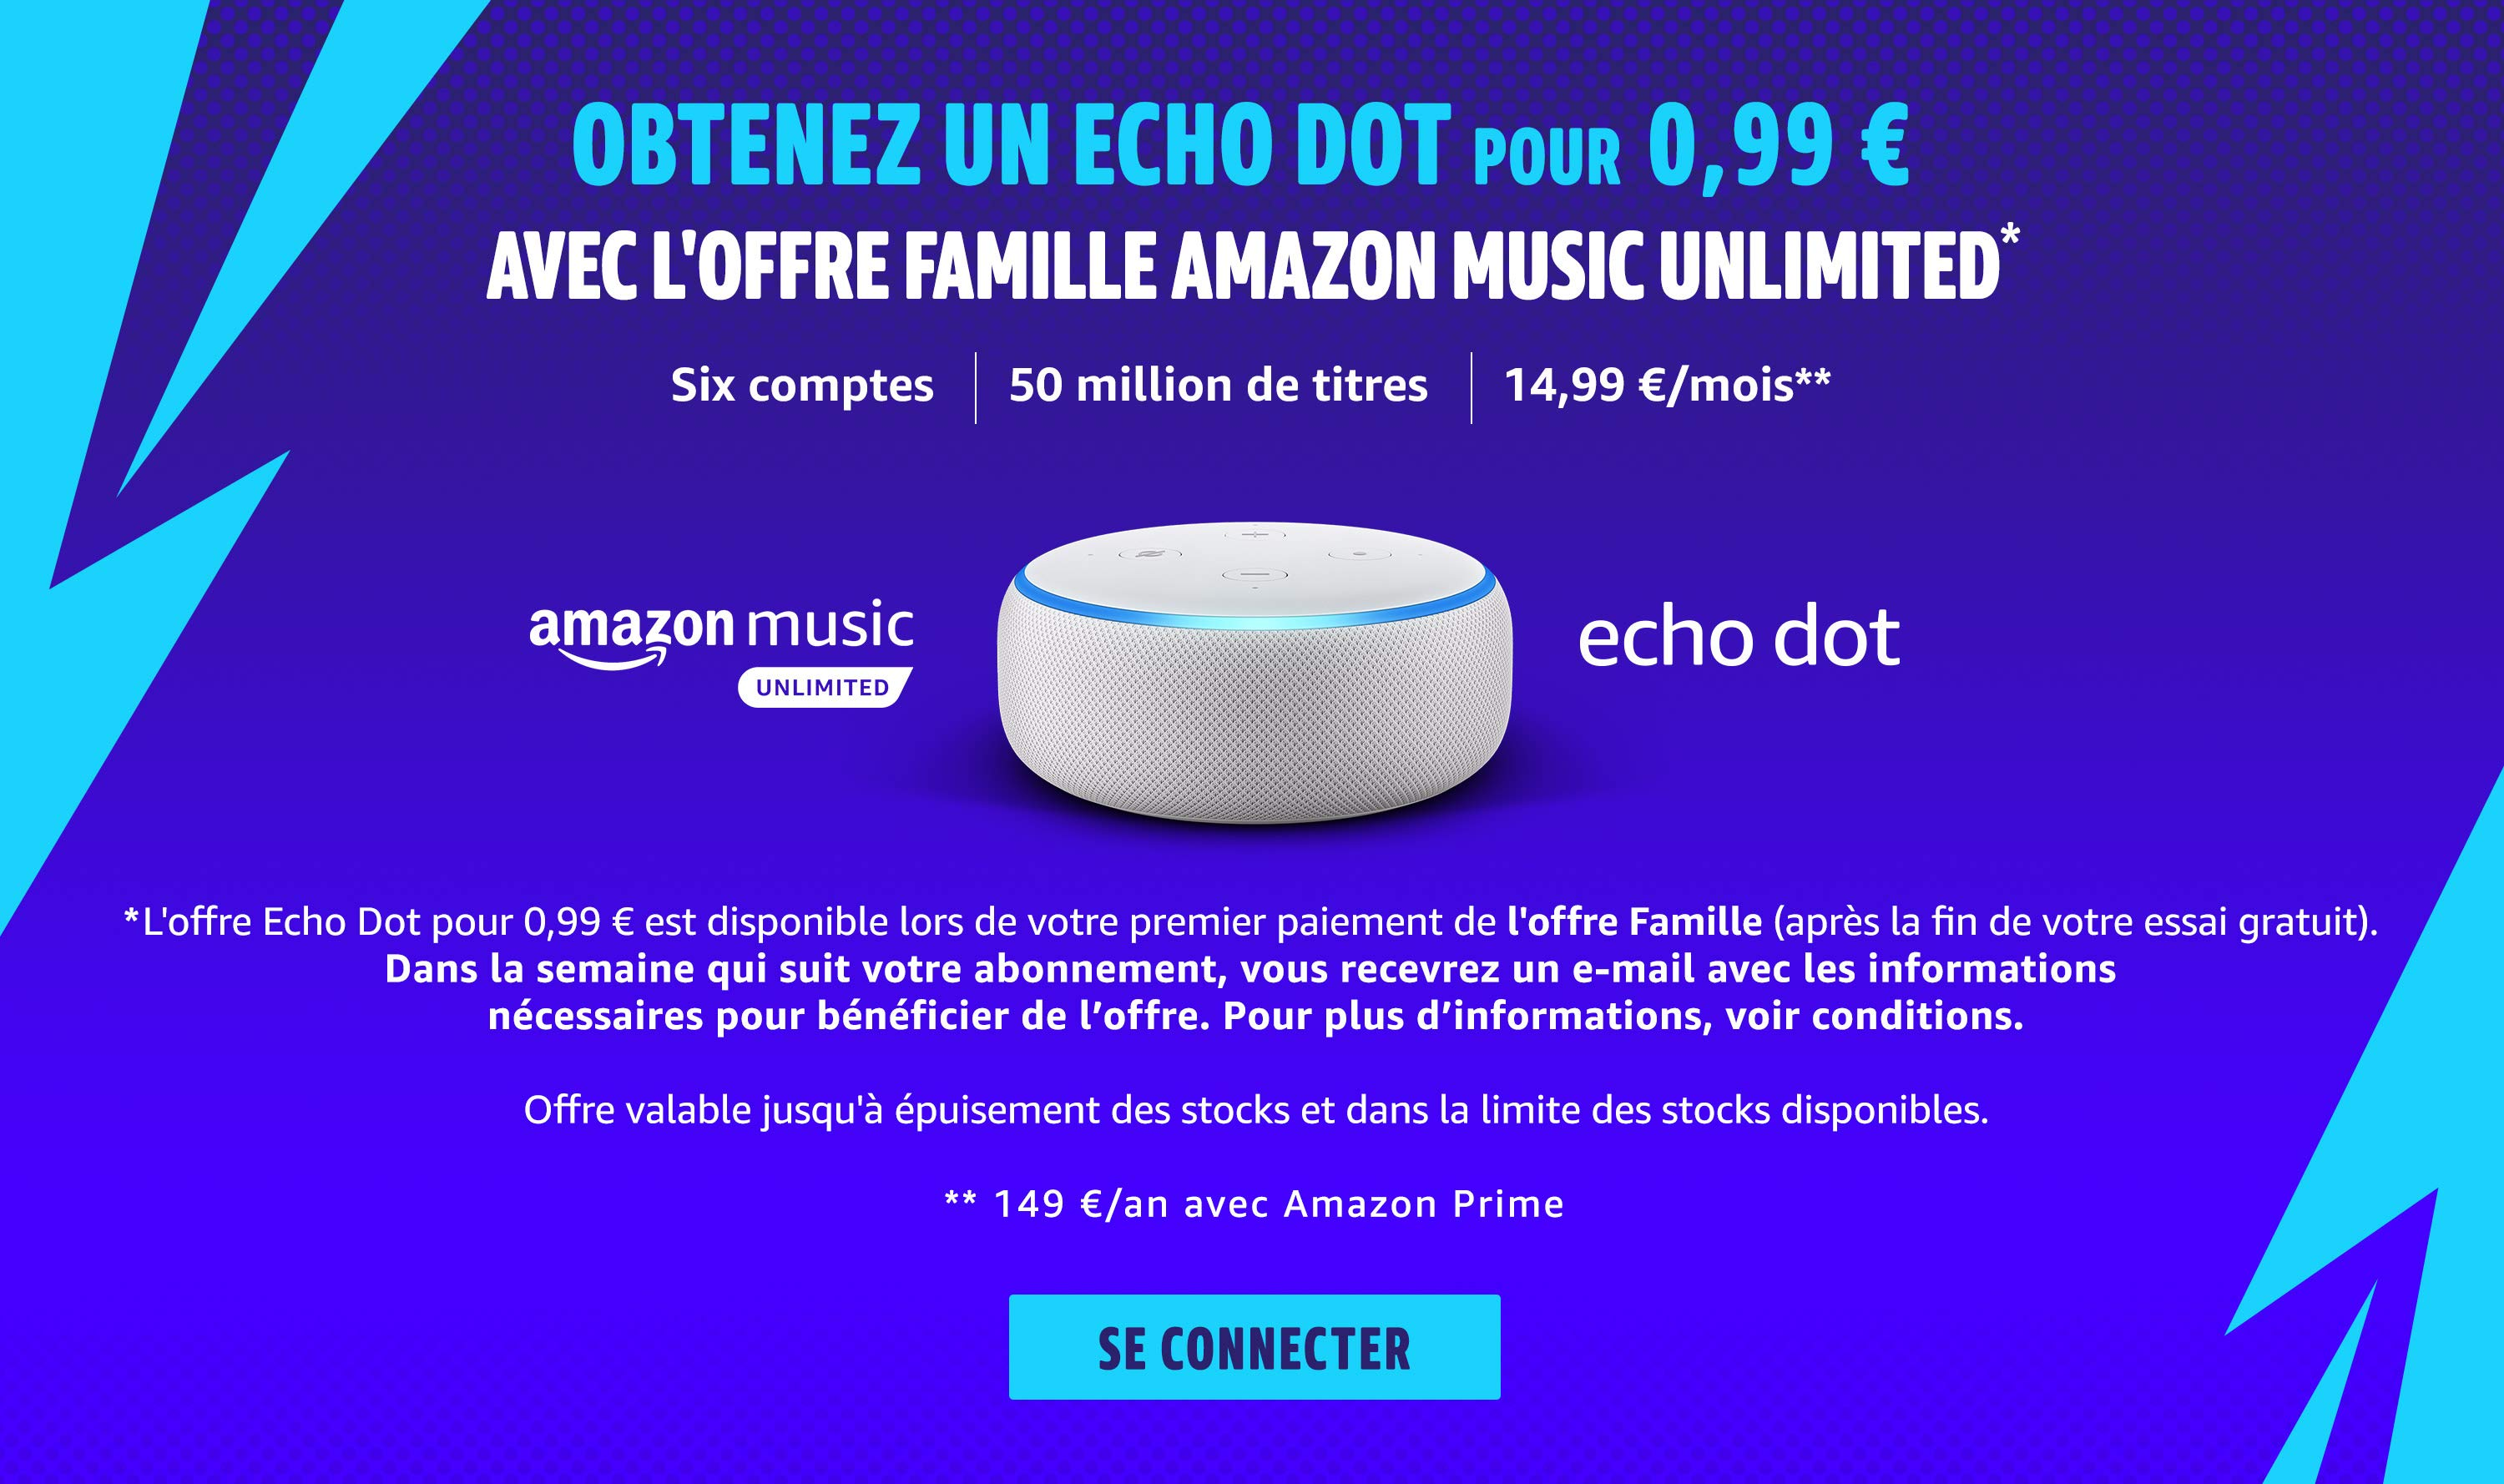 Amazon Music + Echo Dot